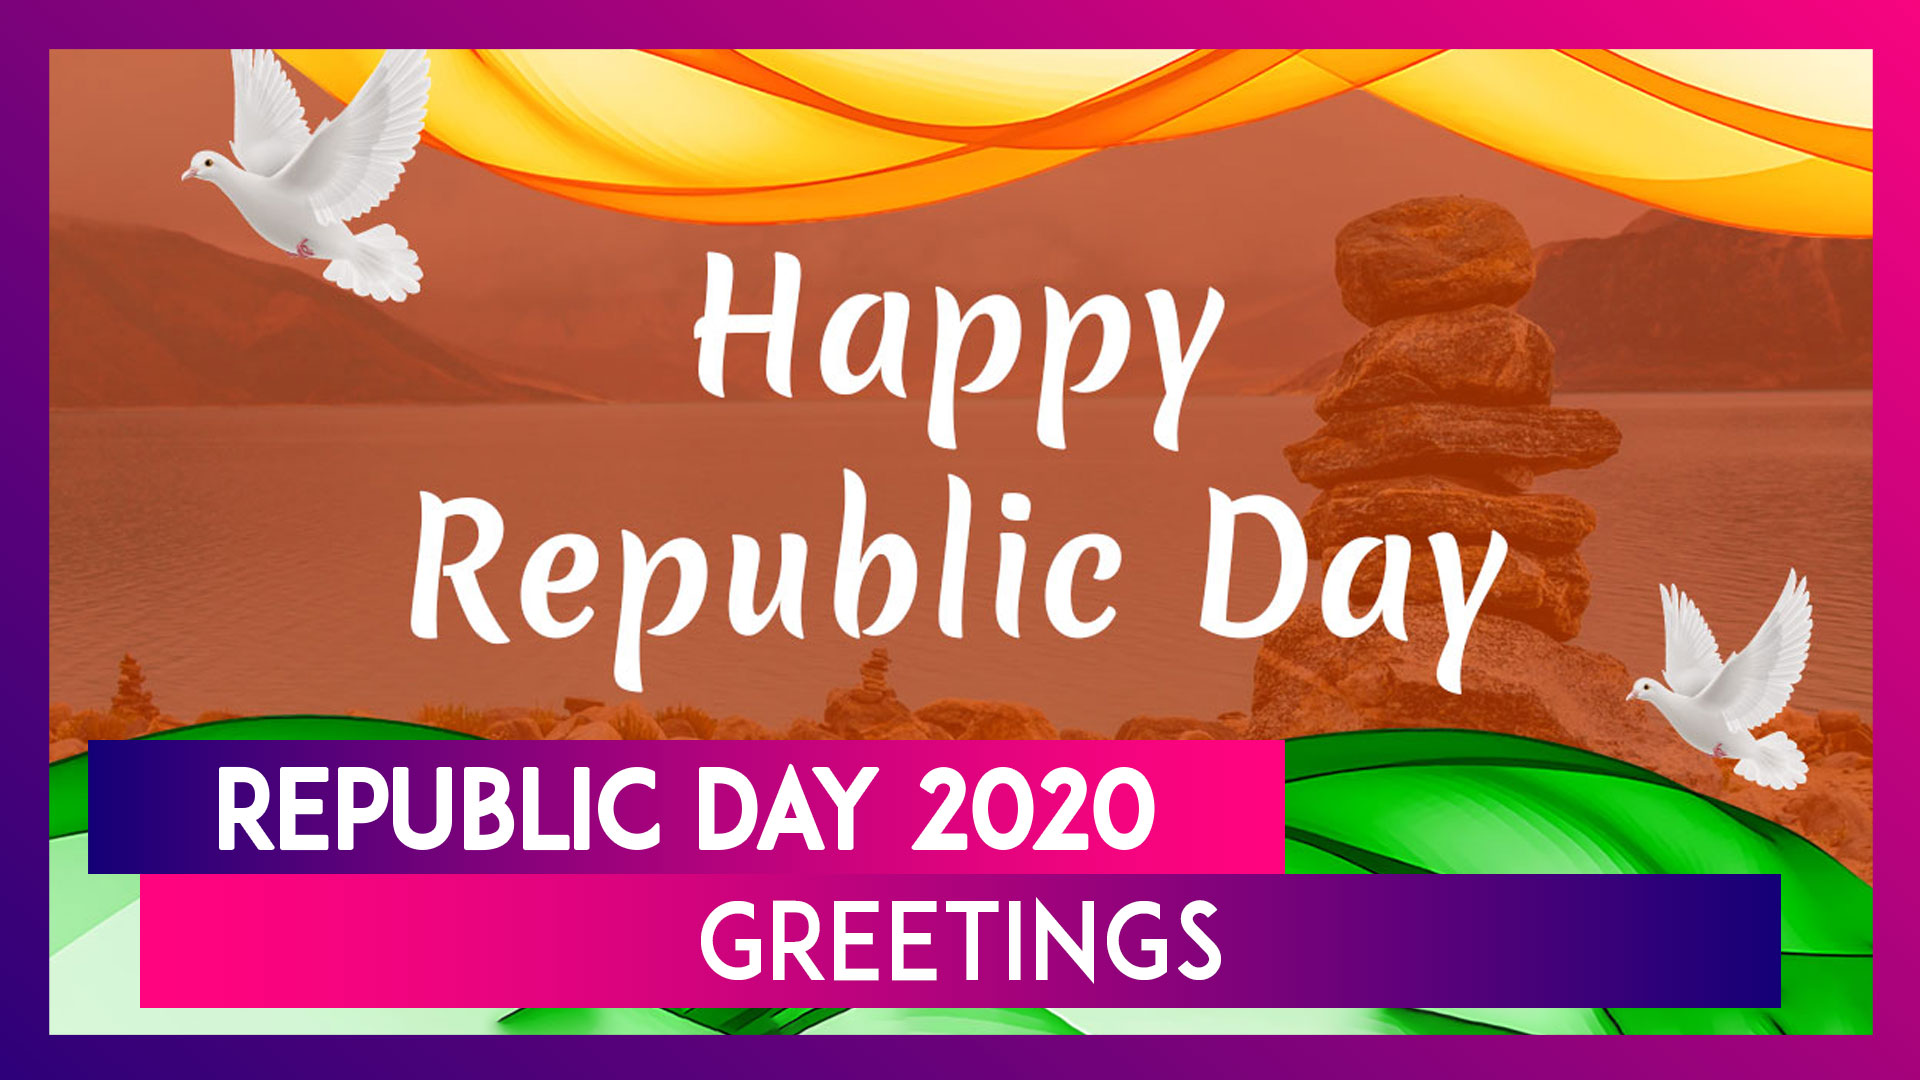 Republic Day 2020 Greetings: WhatsApp Messages, Quotes, Wishes & Images To Send On January 26